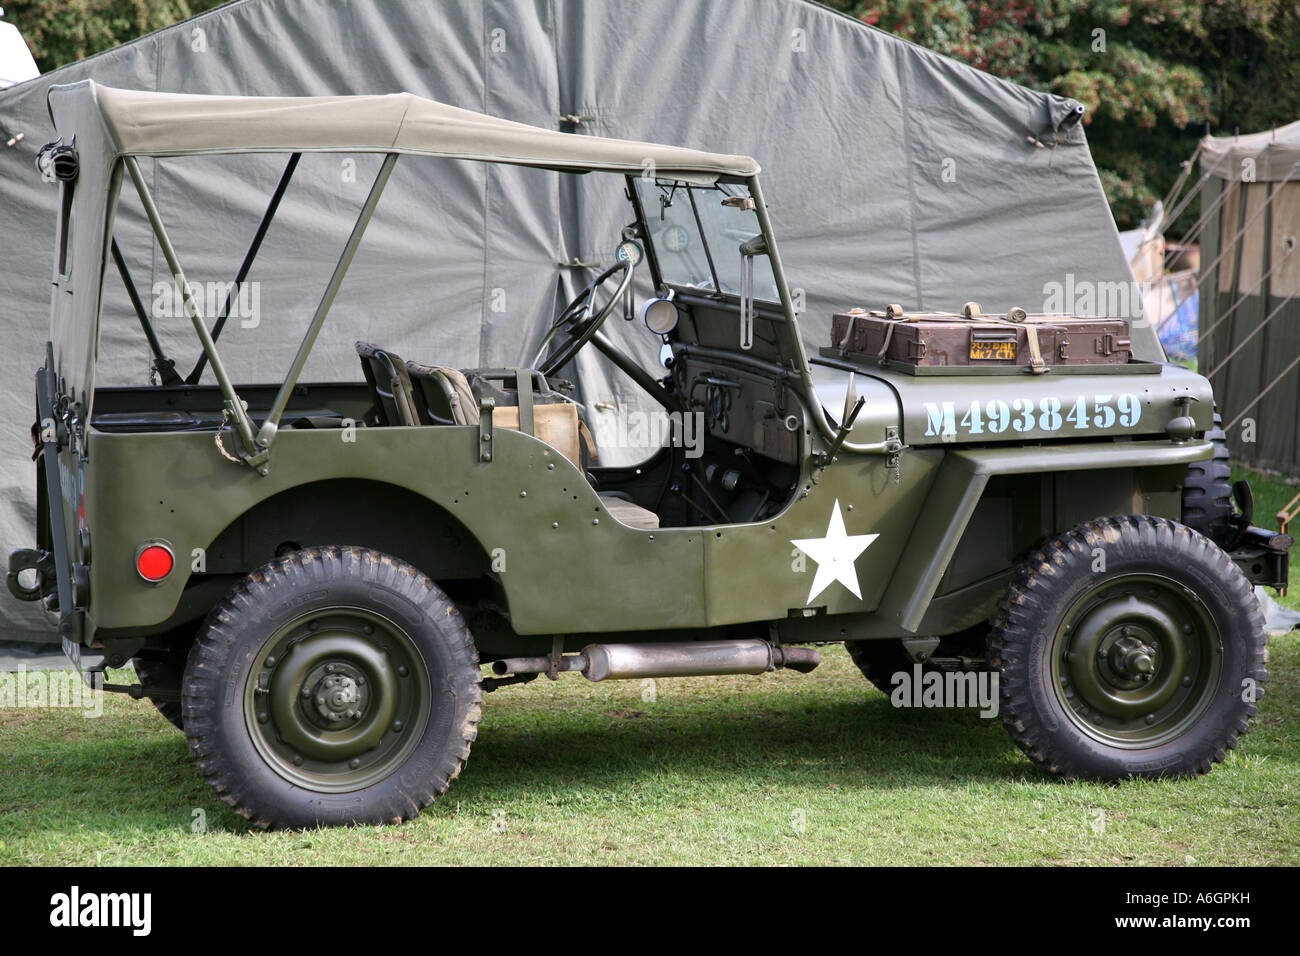 Army Jeep Stock Photos & Army Jeep Stock Images - Alamy